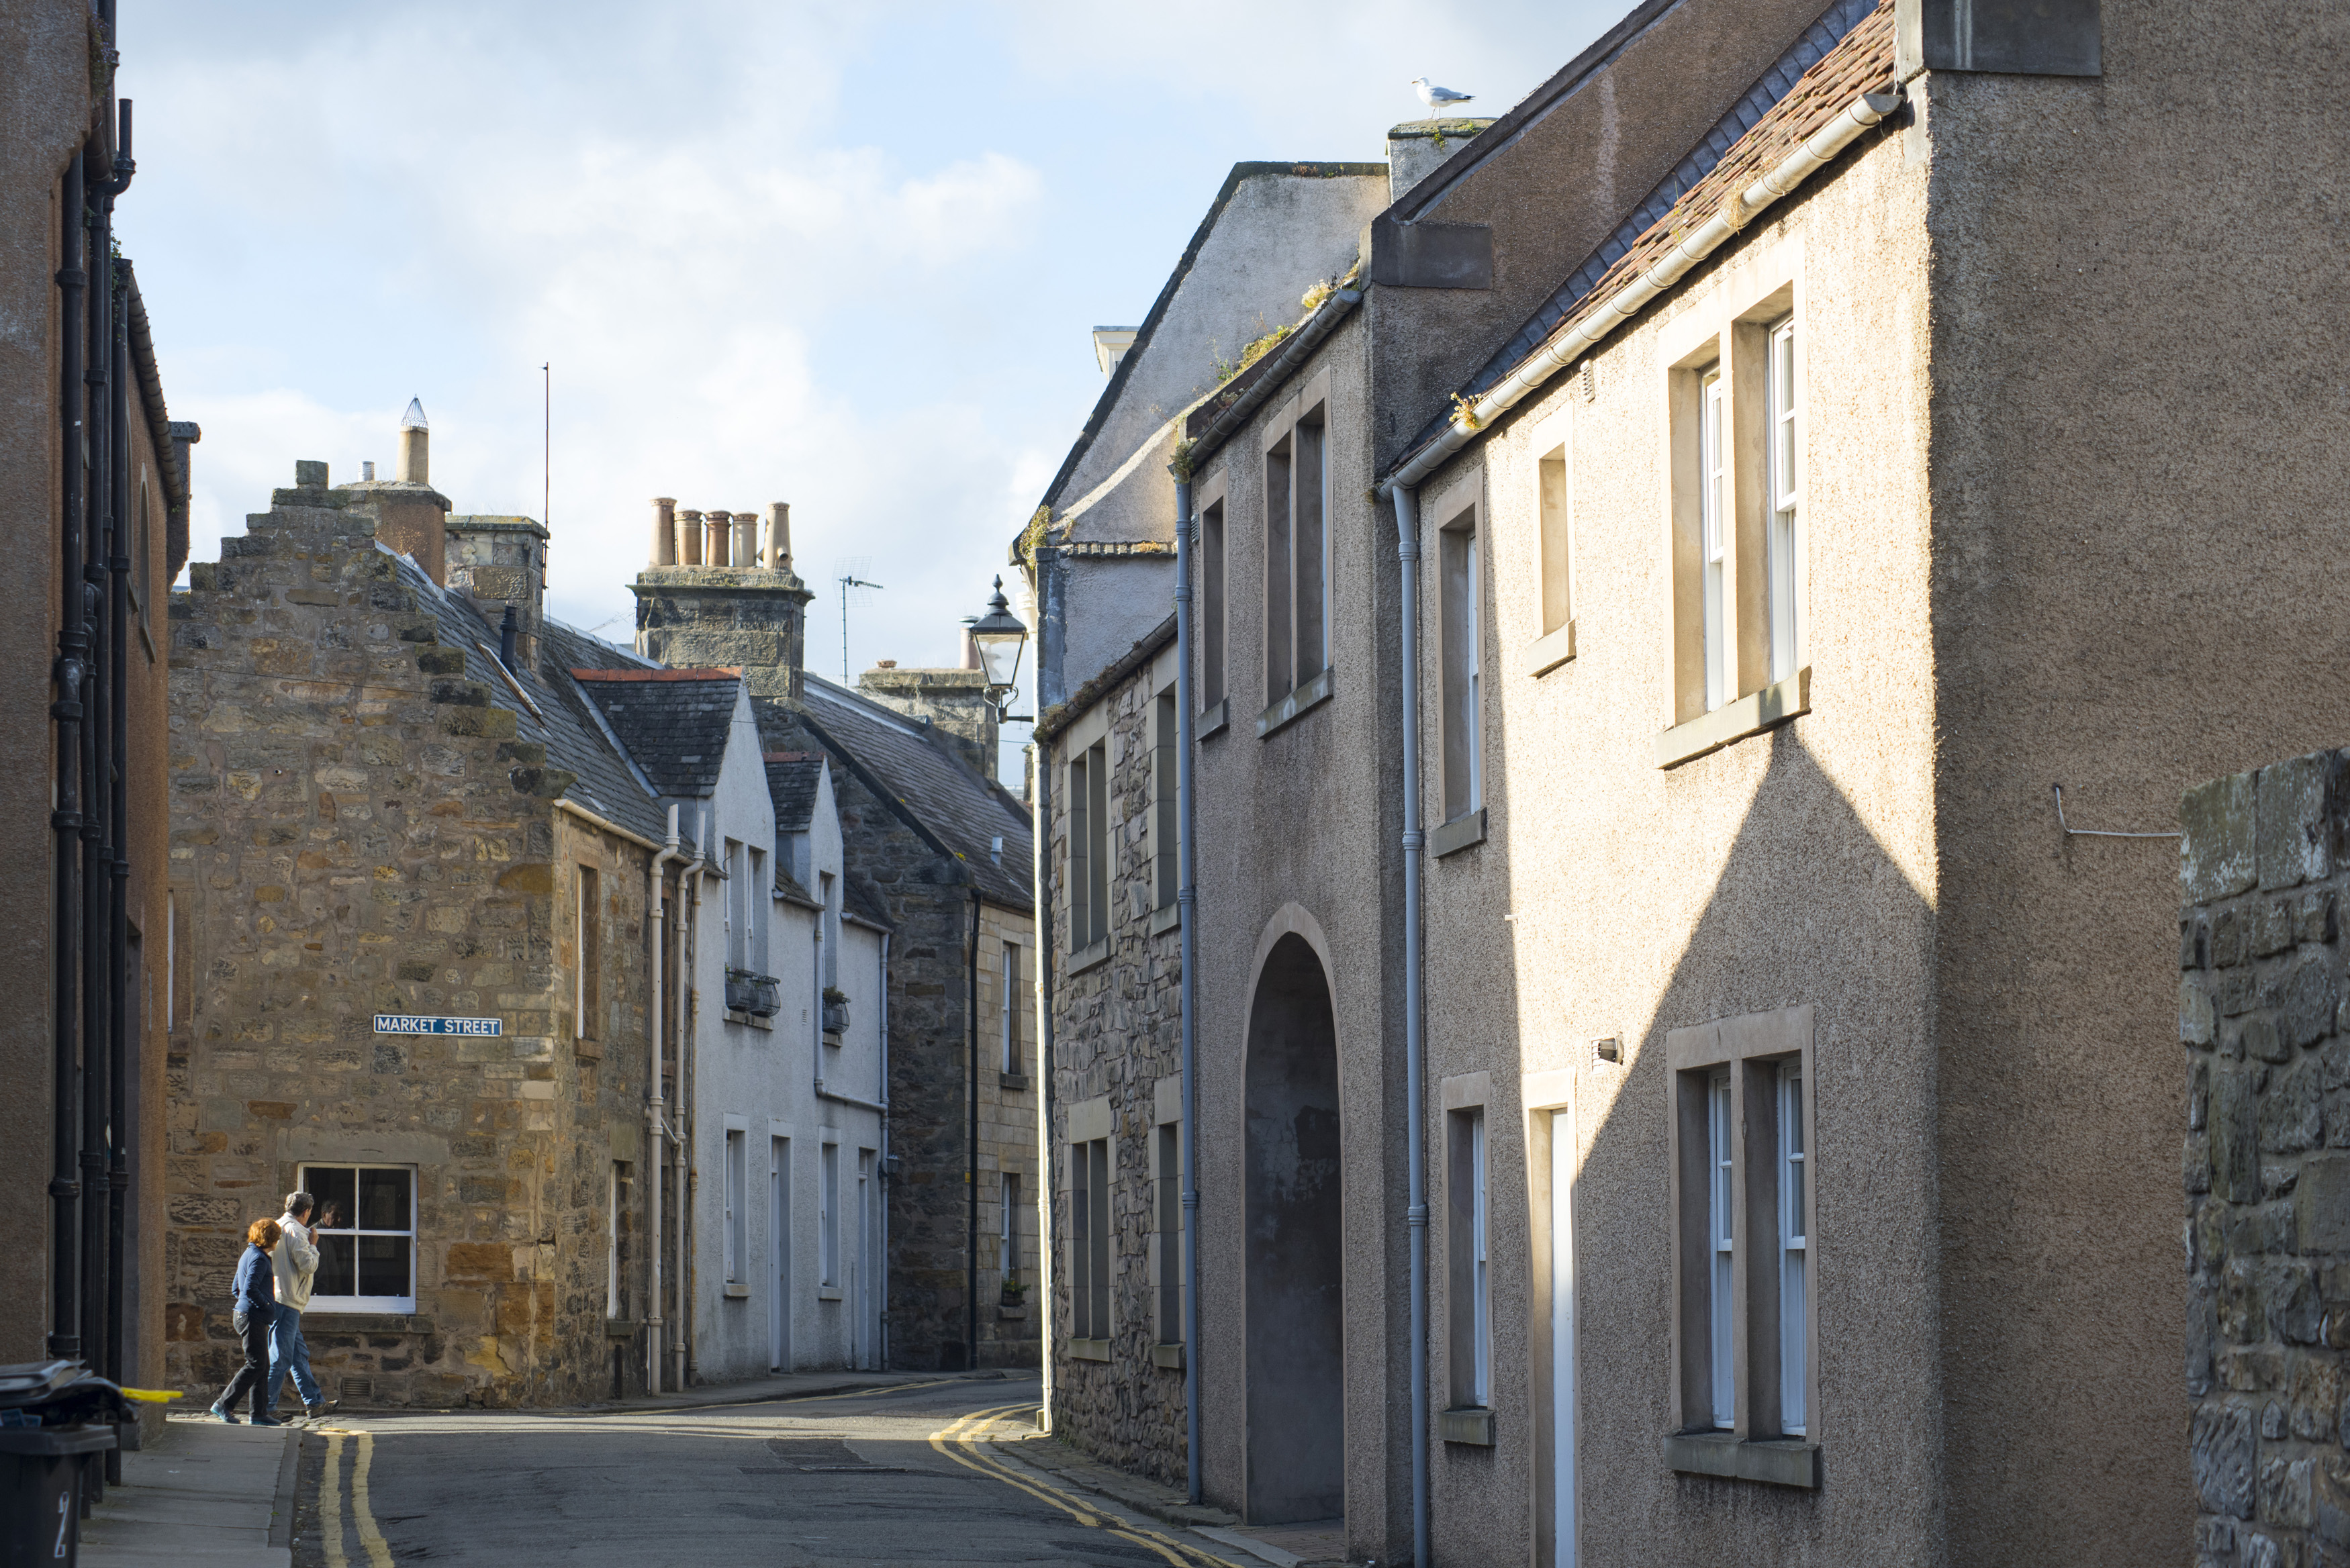 Two people walking through a narrow back street past historic cottages and townhouses, St Andrews, Scotland